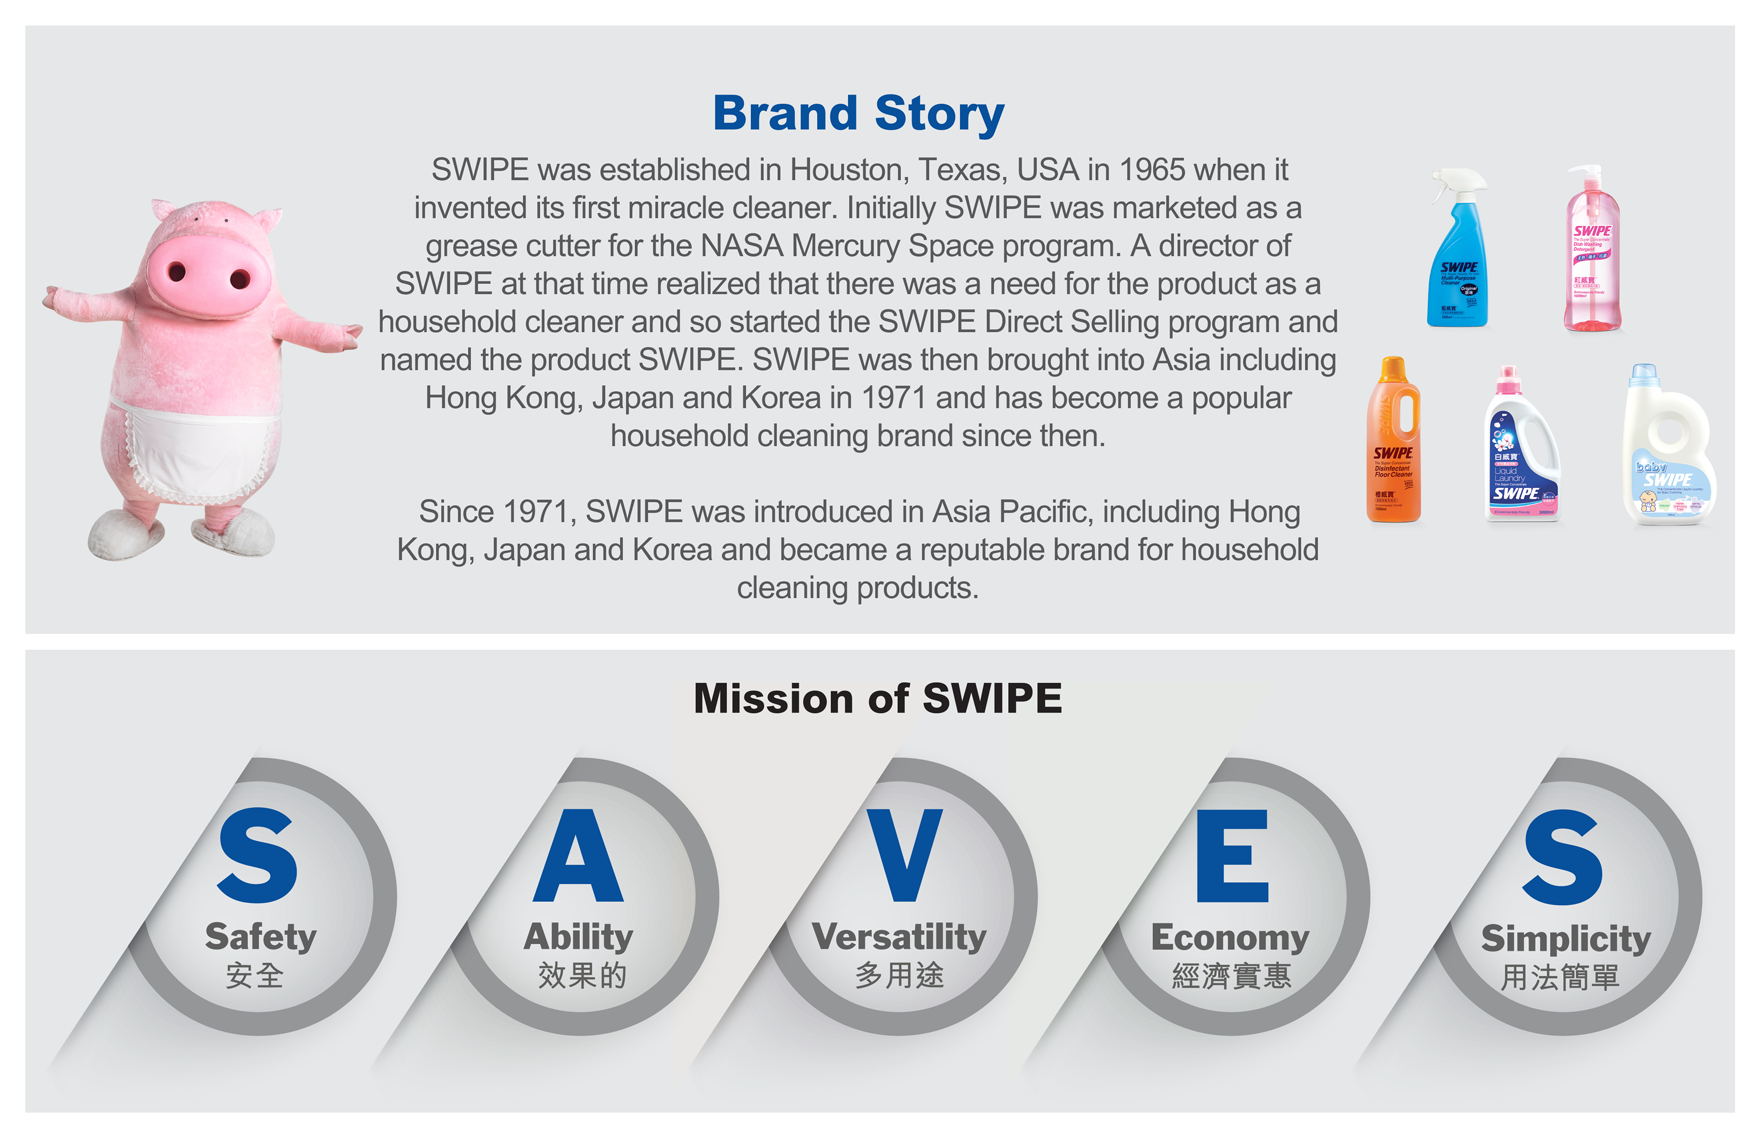 SWIPE Brand Story and Mission